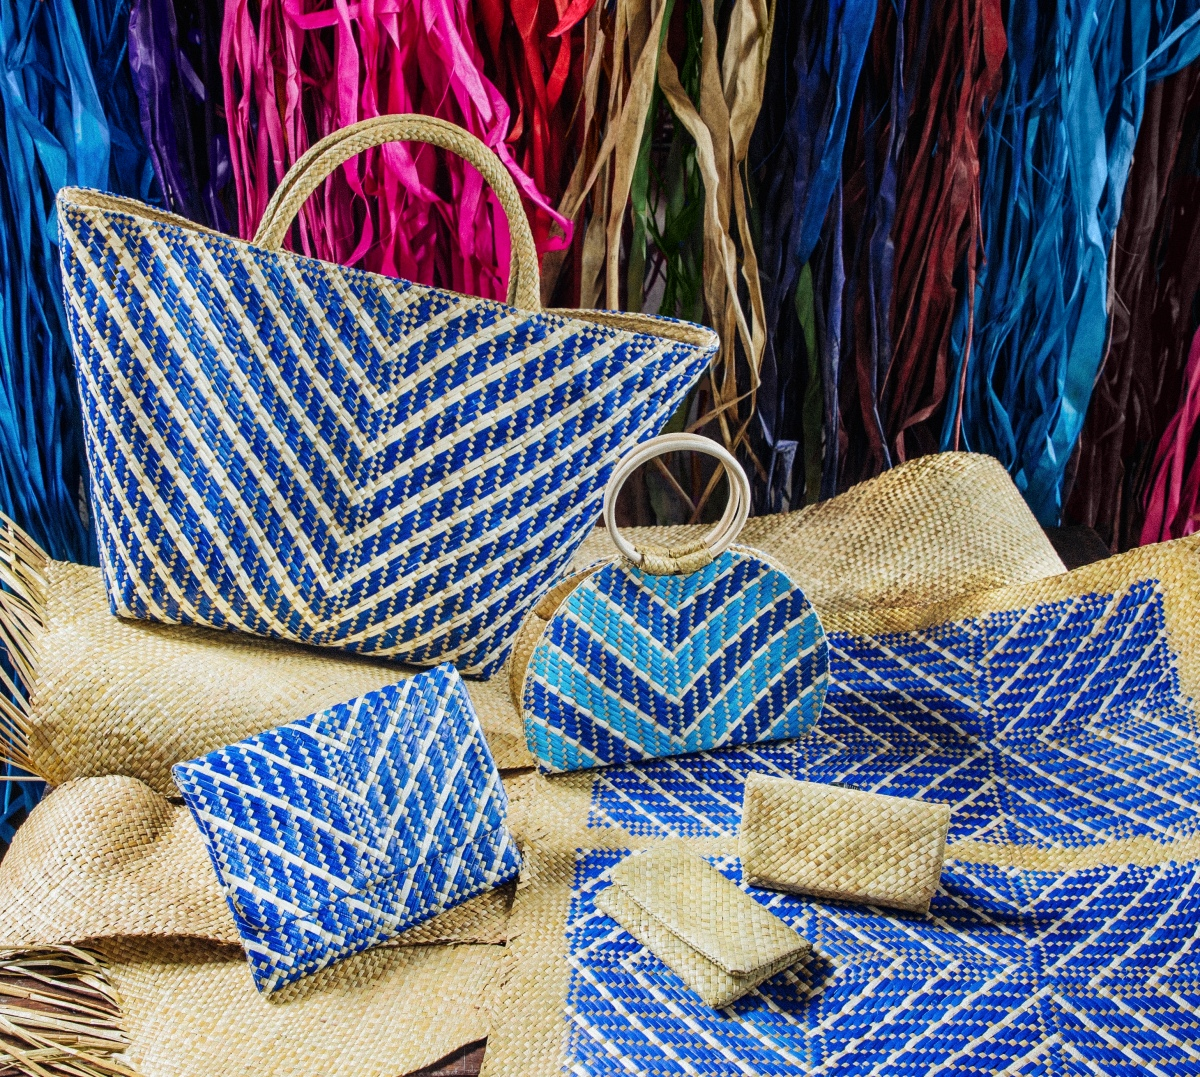 Charles & Keith partners with local brand Woven to benefit local womenweavers